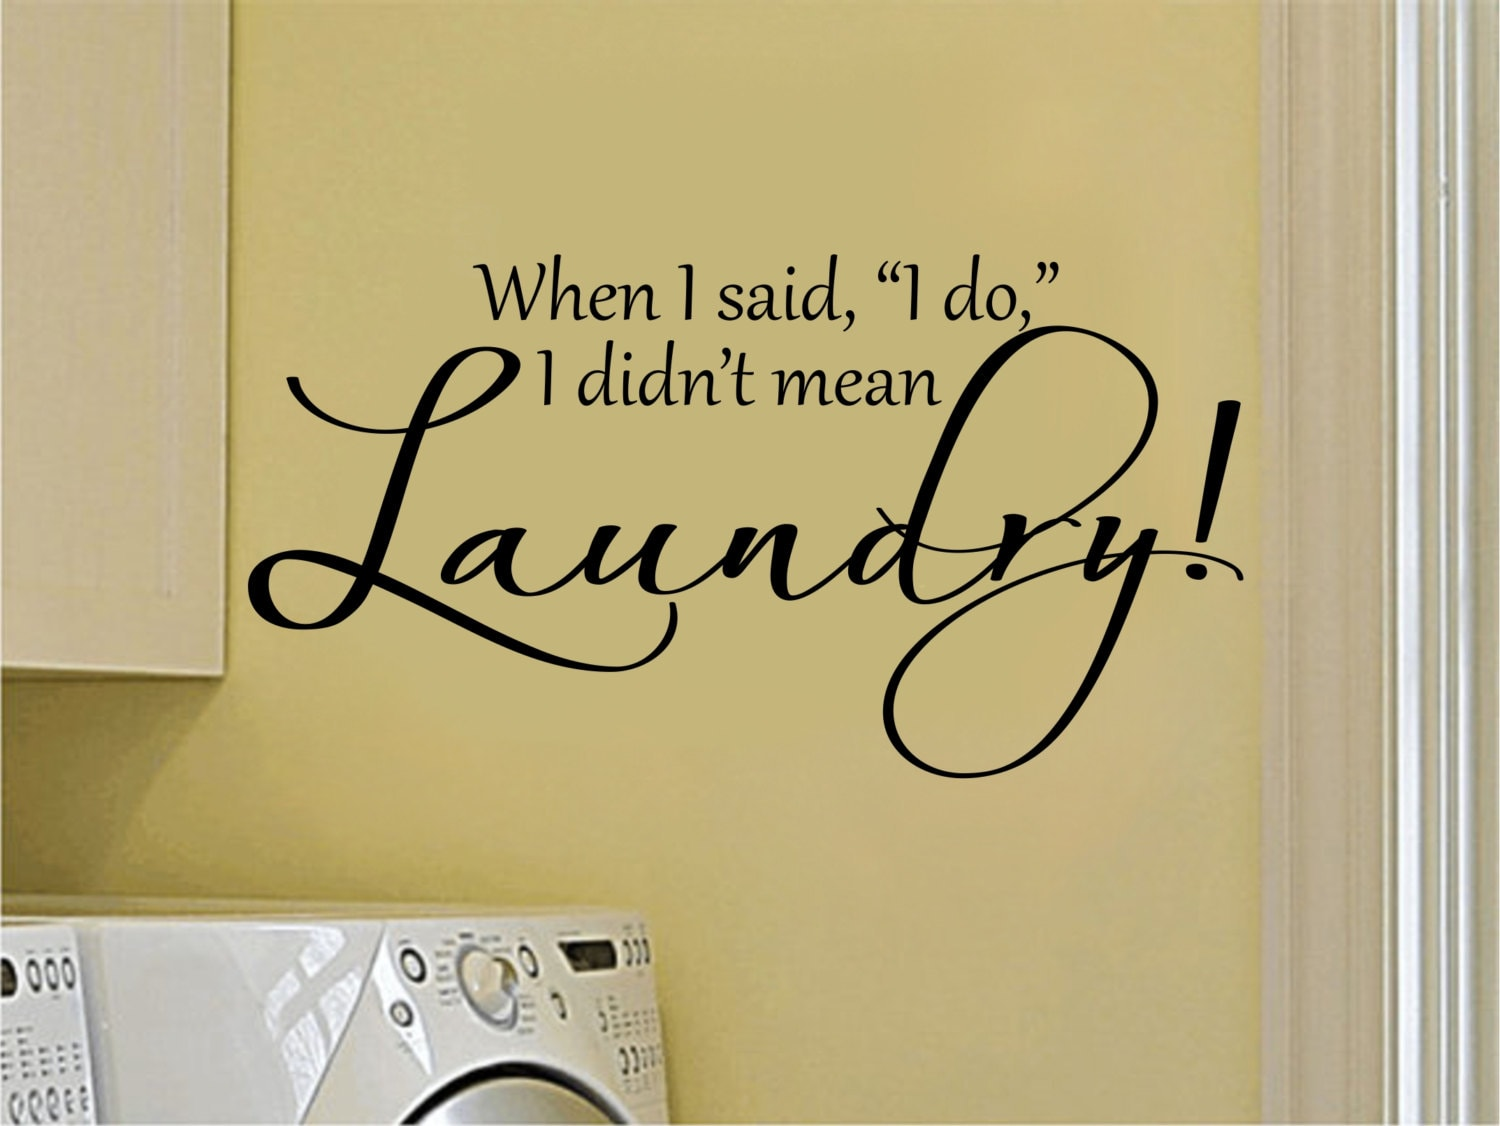 Laundry room decal laundry room decor when i said i do i didn laundry room decal laundry room decor when i said i do i didnt mean laundry laundry wall decal amipublicfo Images